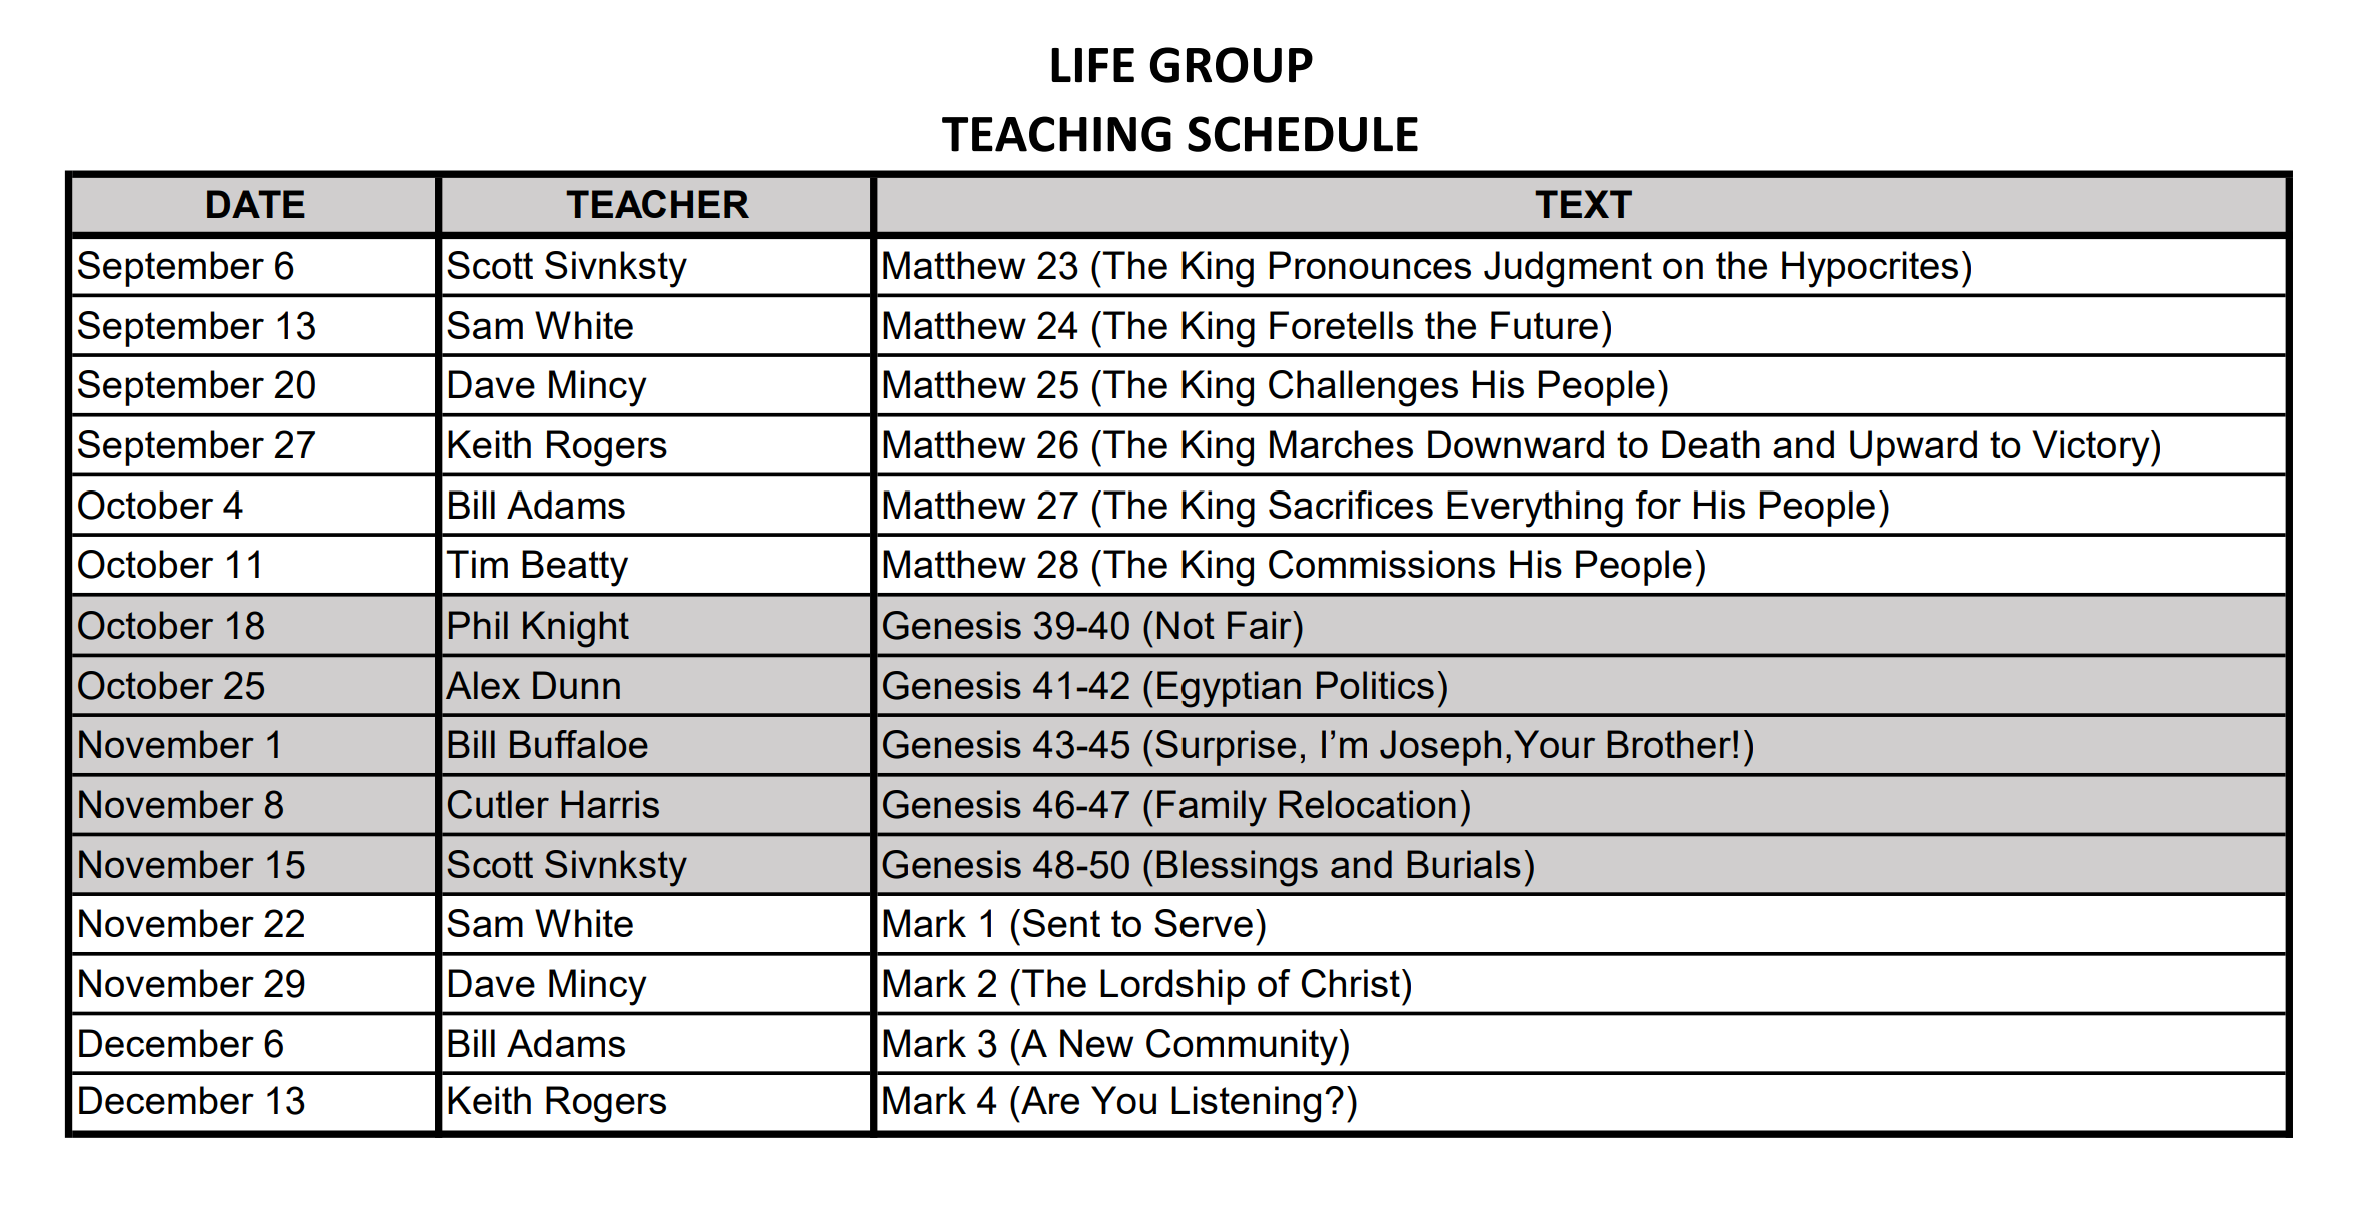 Life Group Teaching Schedule 2020.09-2020.12